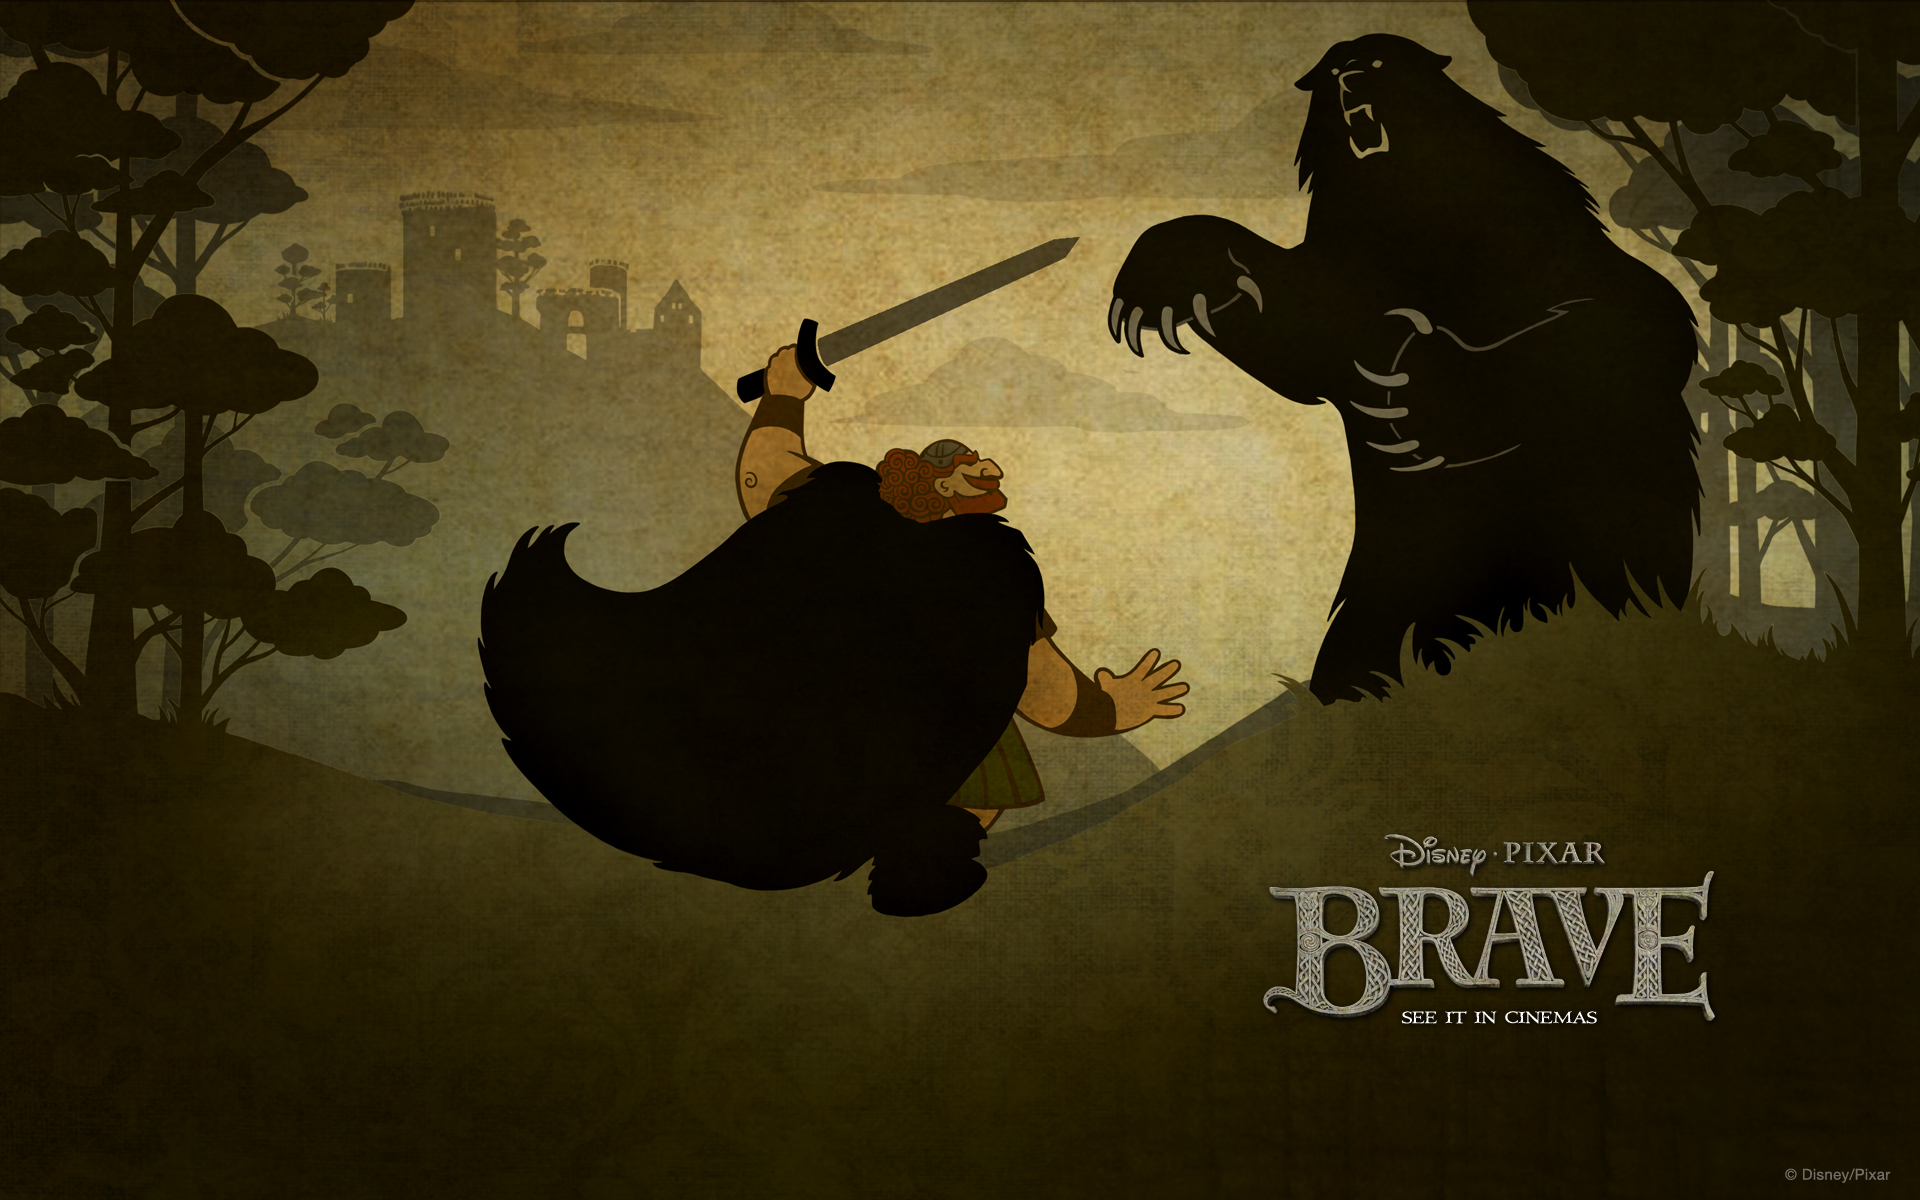 Animated Hd Wallpapers For Pc Full Screen Brave Animated Movie Outstanding New Wallpapers All Hd